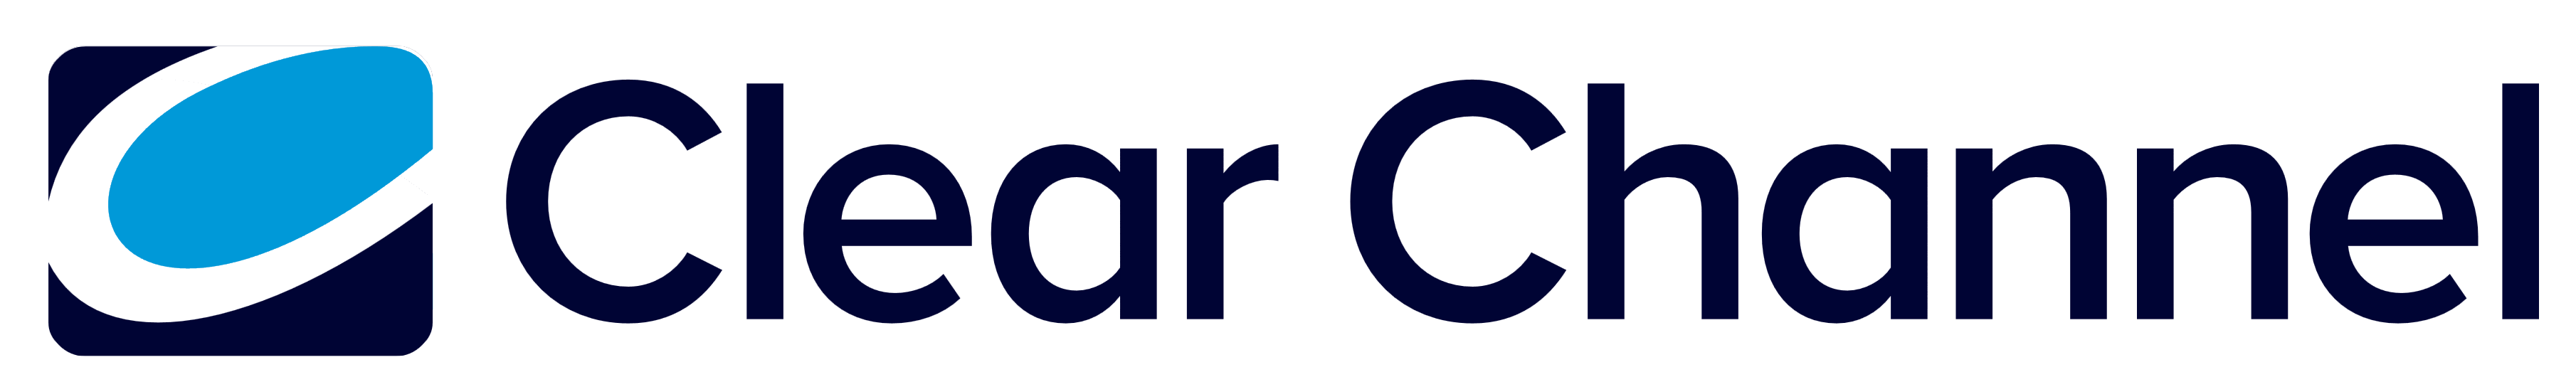 logo-clearchannel